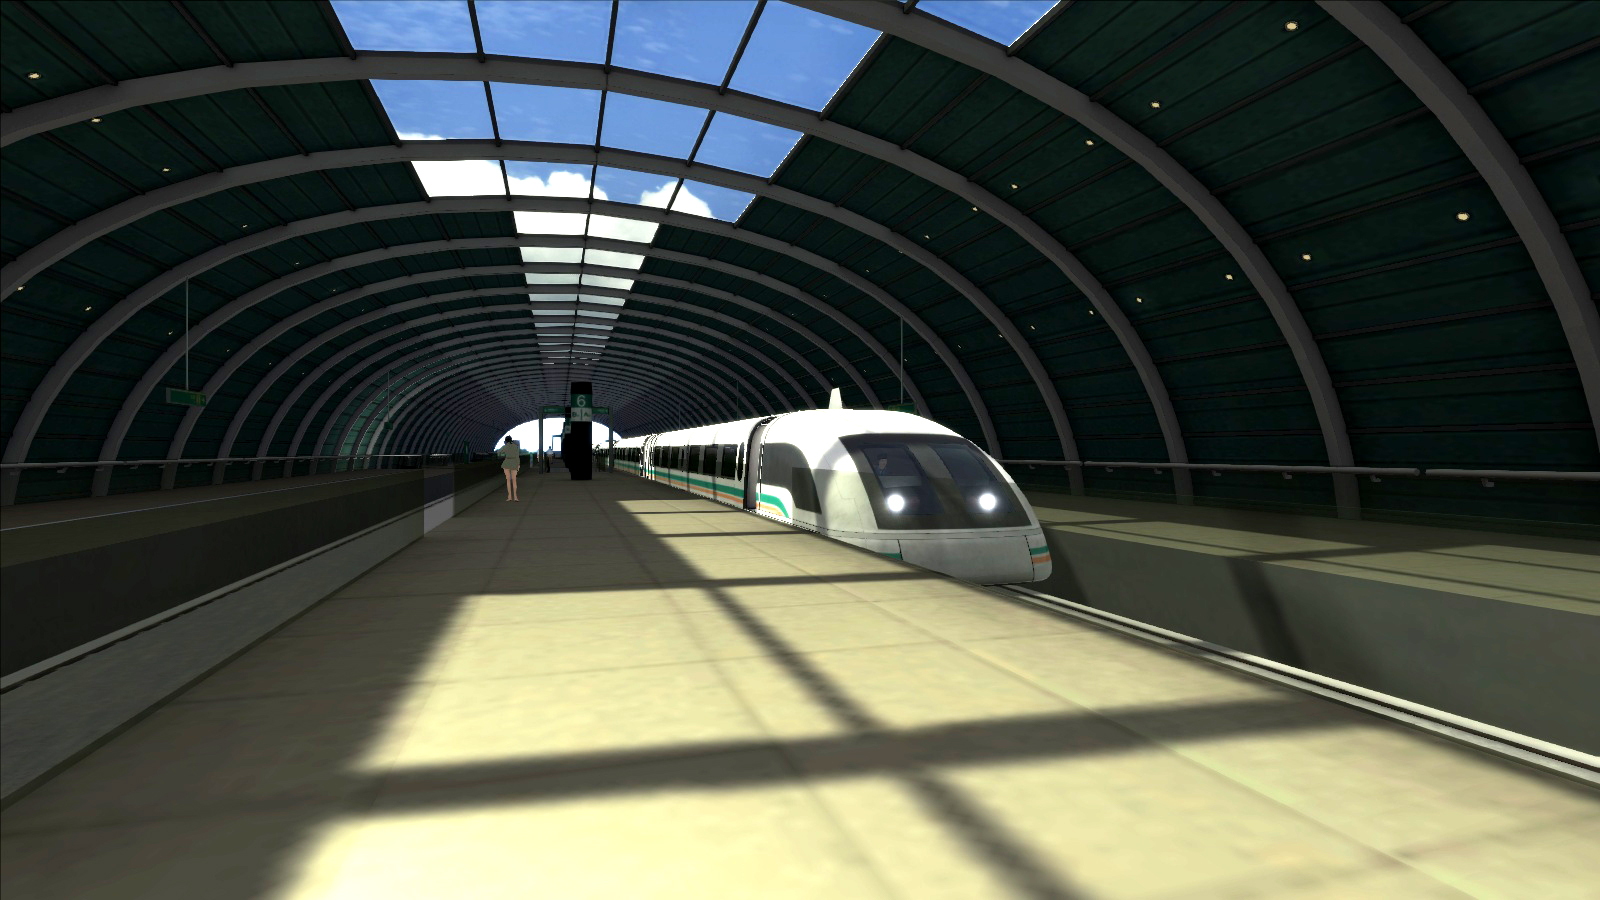 screenshot_the_shanghai_maglev_31_20472-121_55209_10-30-39.jpg